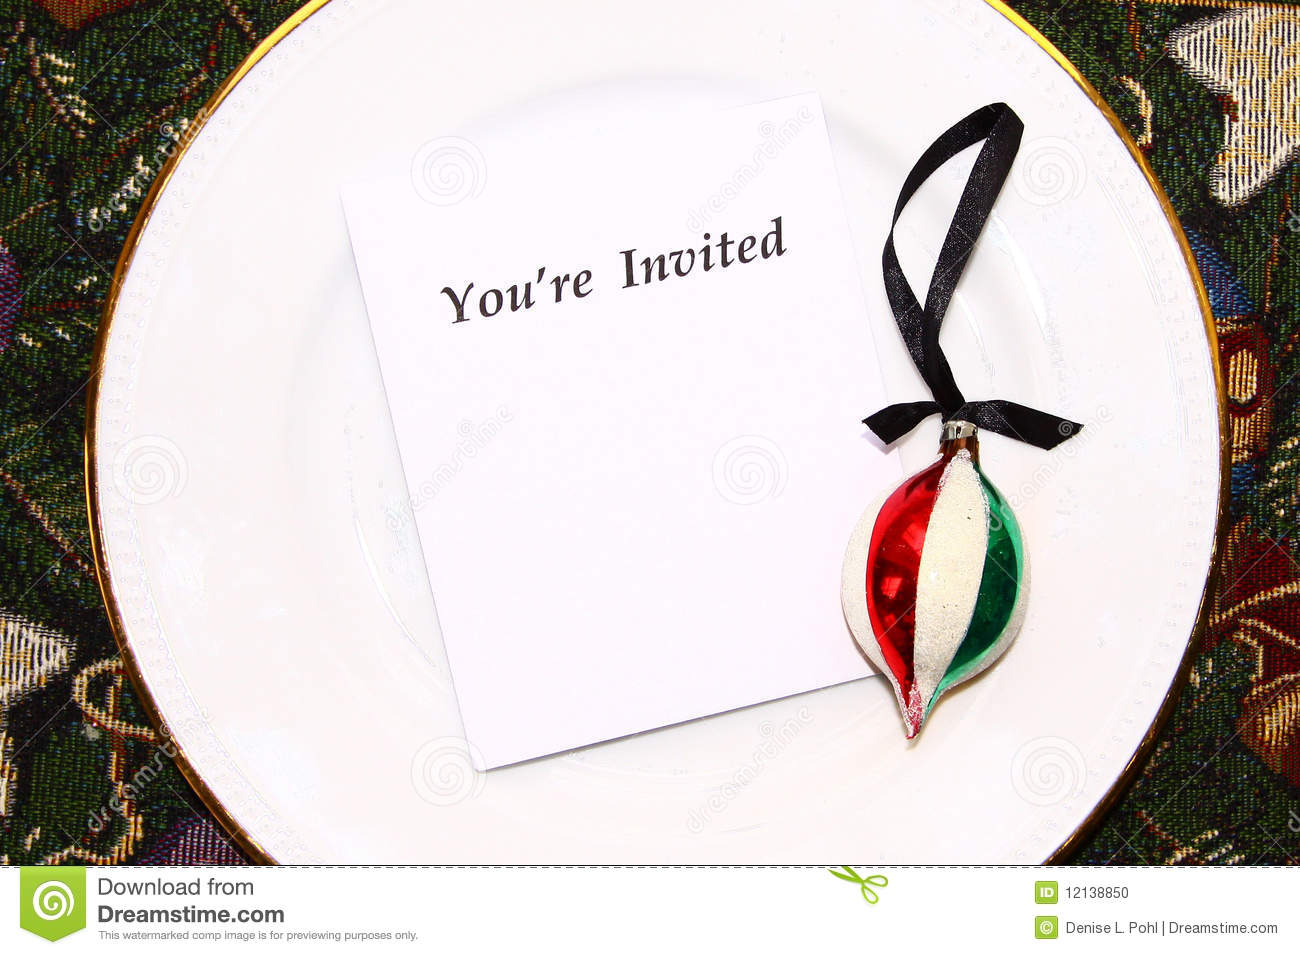 You're Invited Stock Photo - Image: 12138850